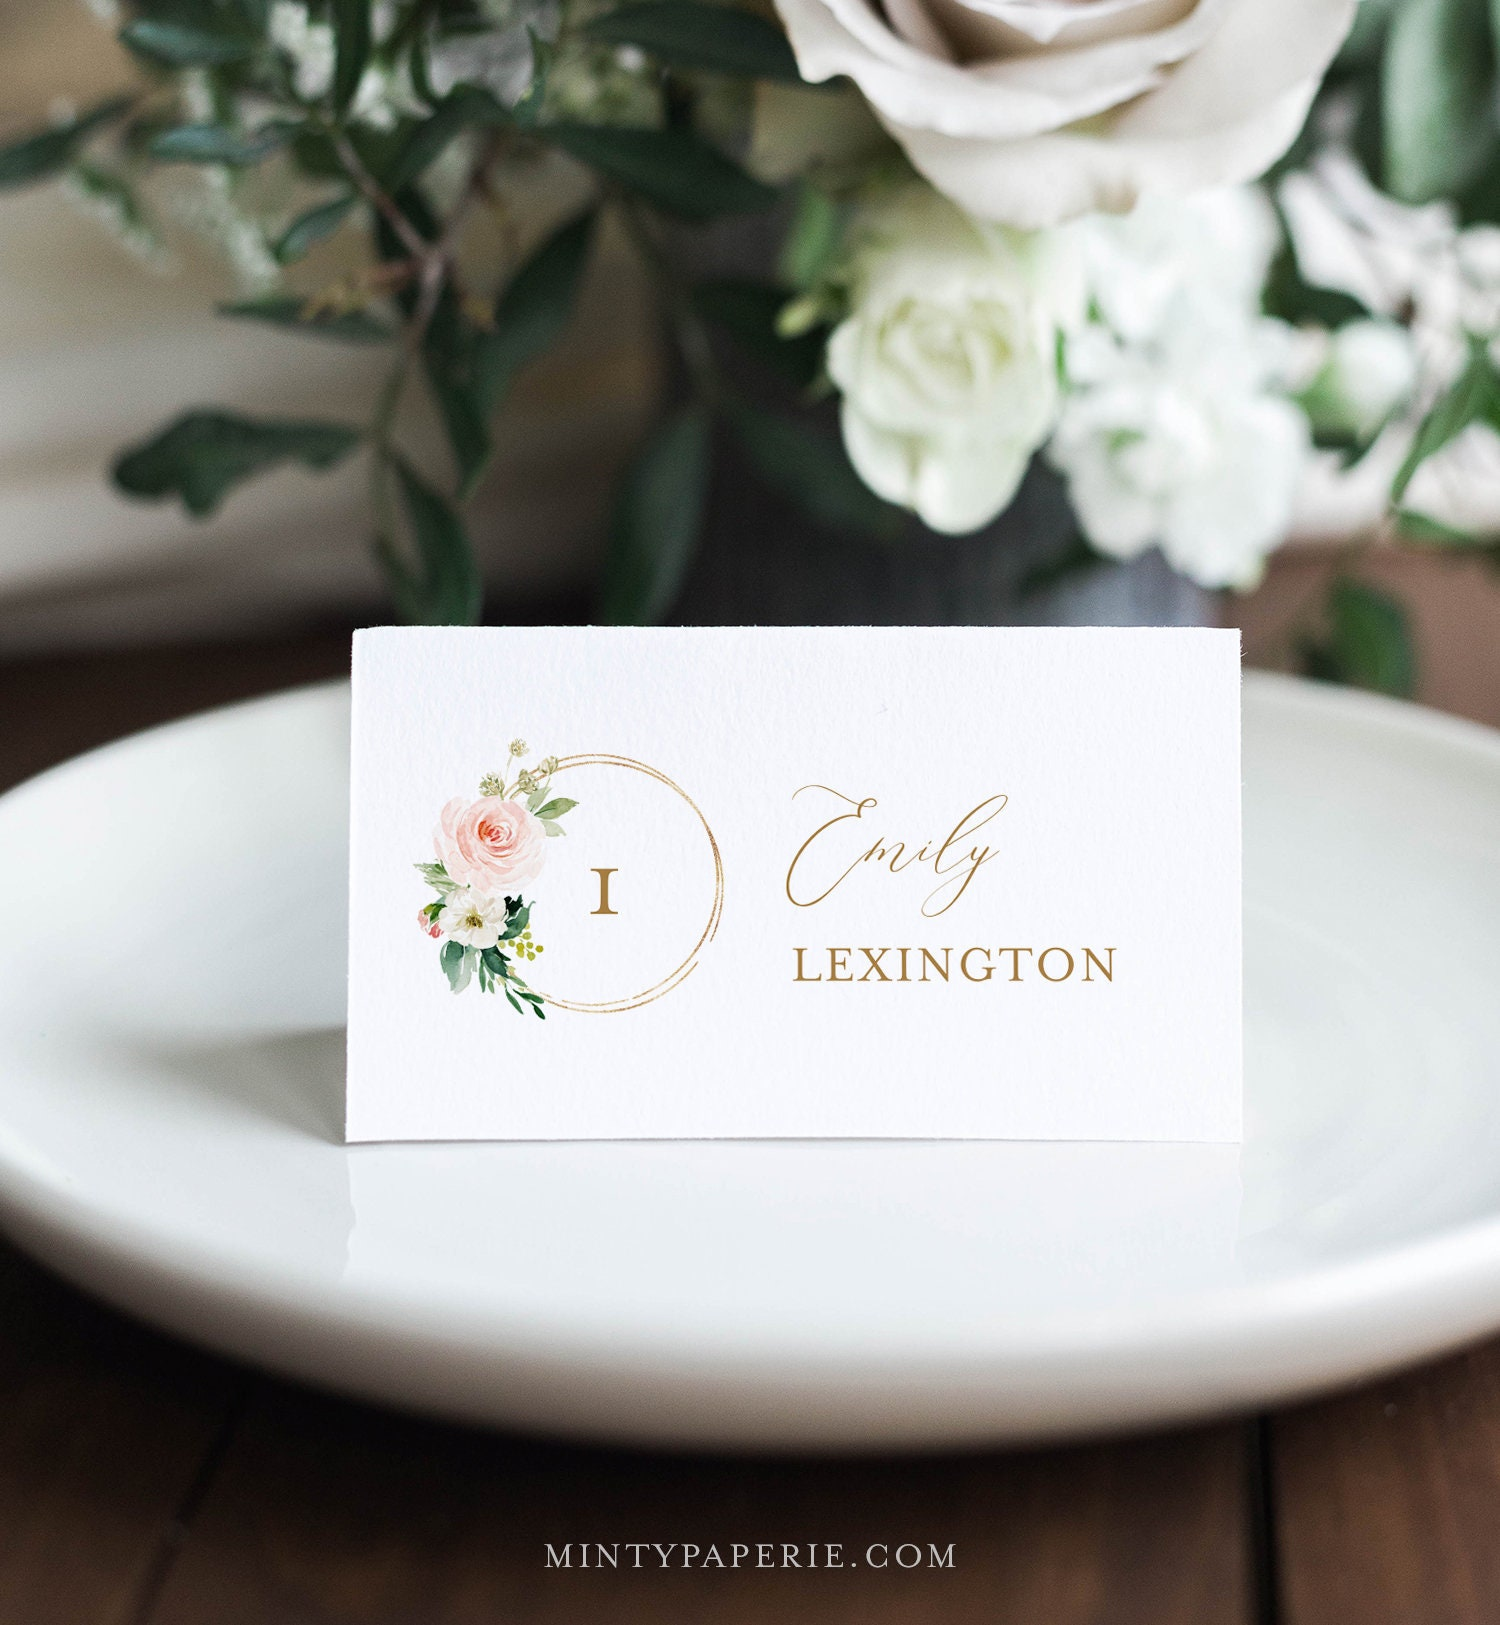 Editable  Seating Card Blush Boho Place Card Template Printable Wedding Escort Card Angela Floral INSTANT DOWNLOAD Name Card PDF